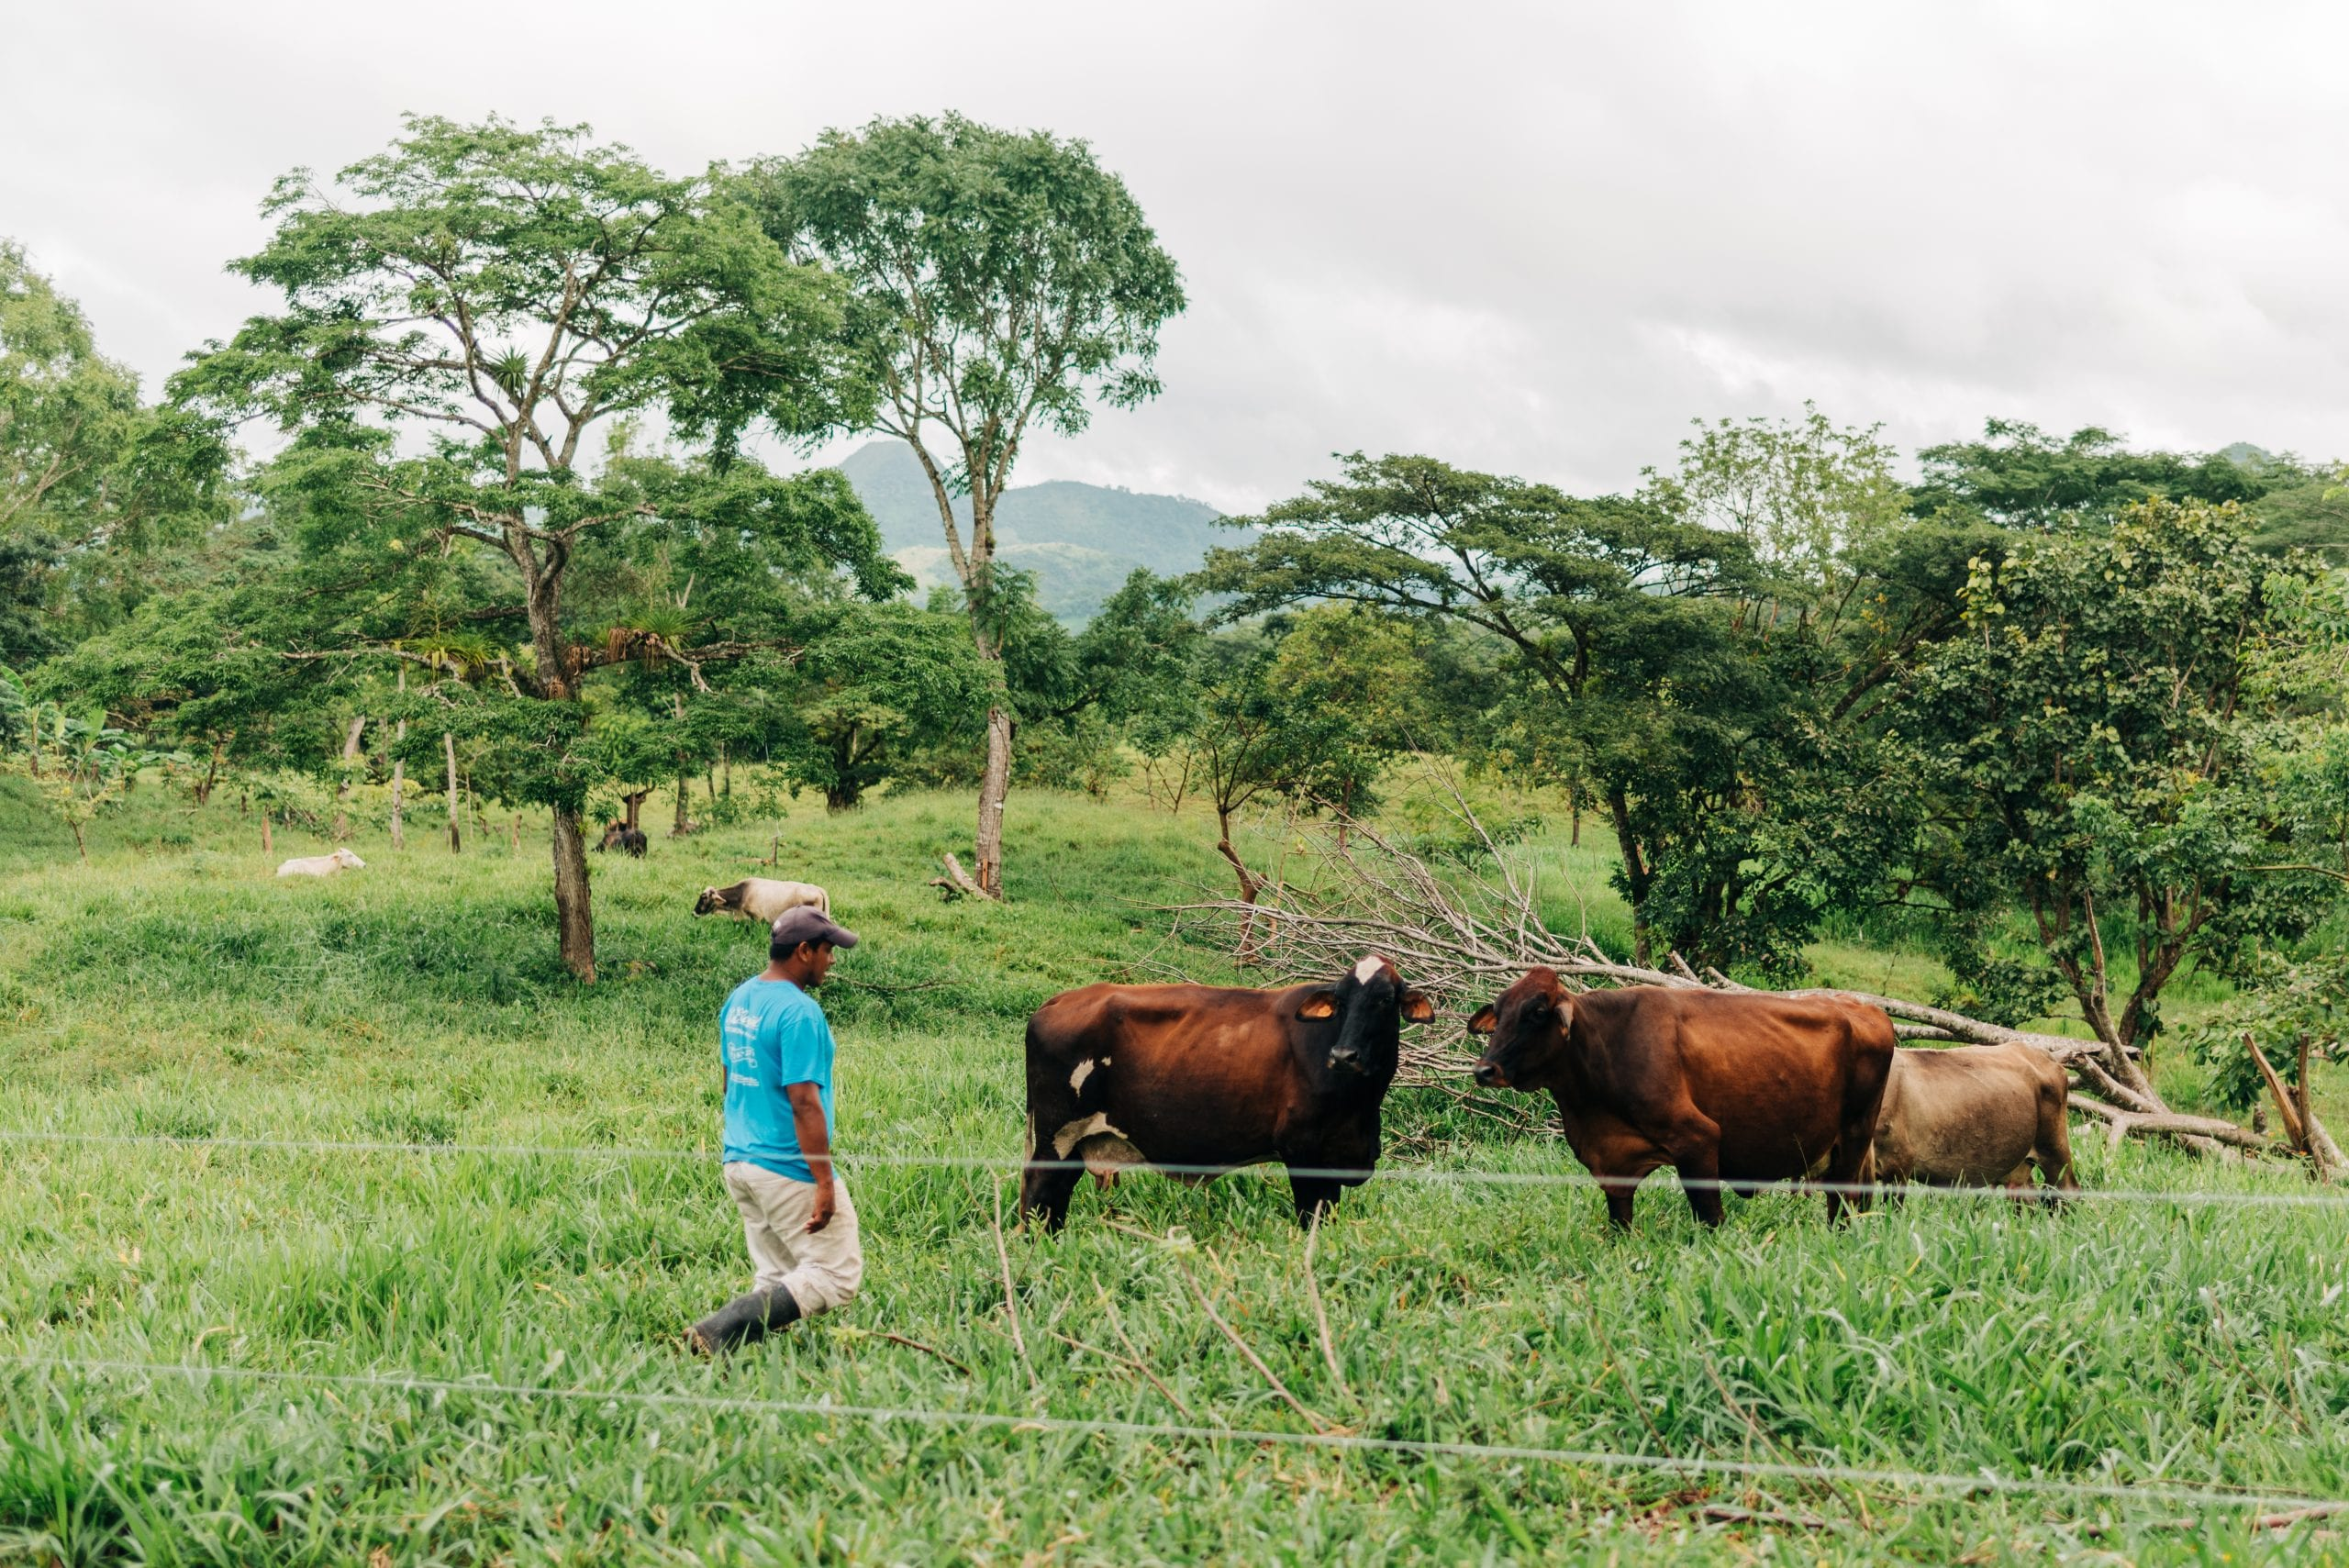 Jeudin Francisco Mendoza Martinez is a cattle rancher in Nicaragua